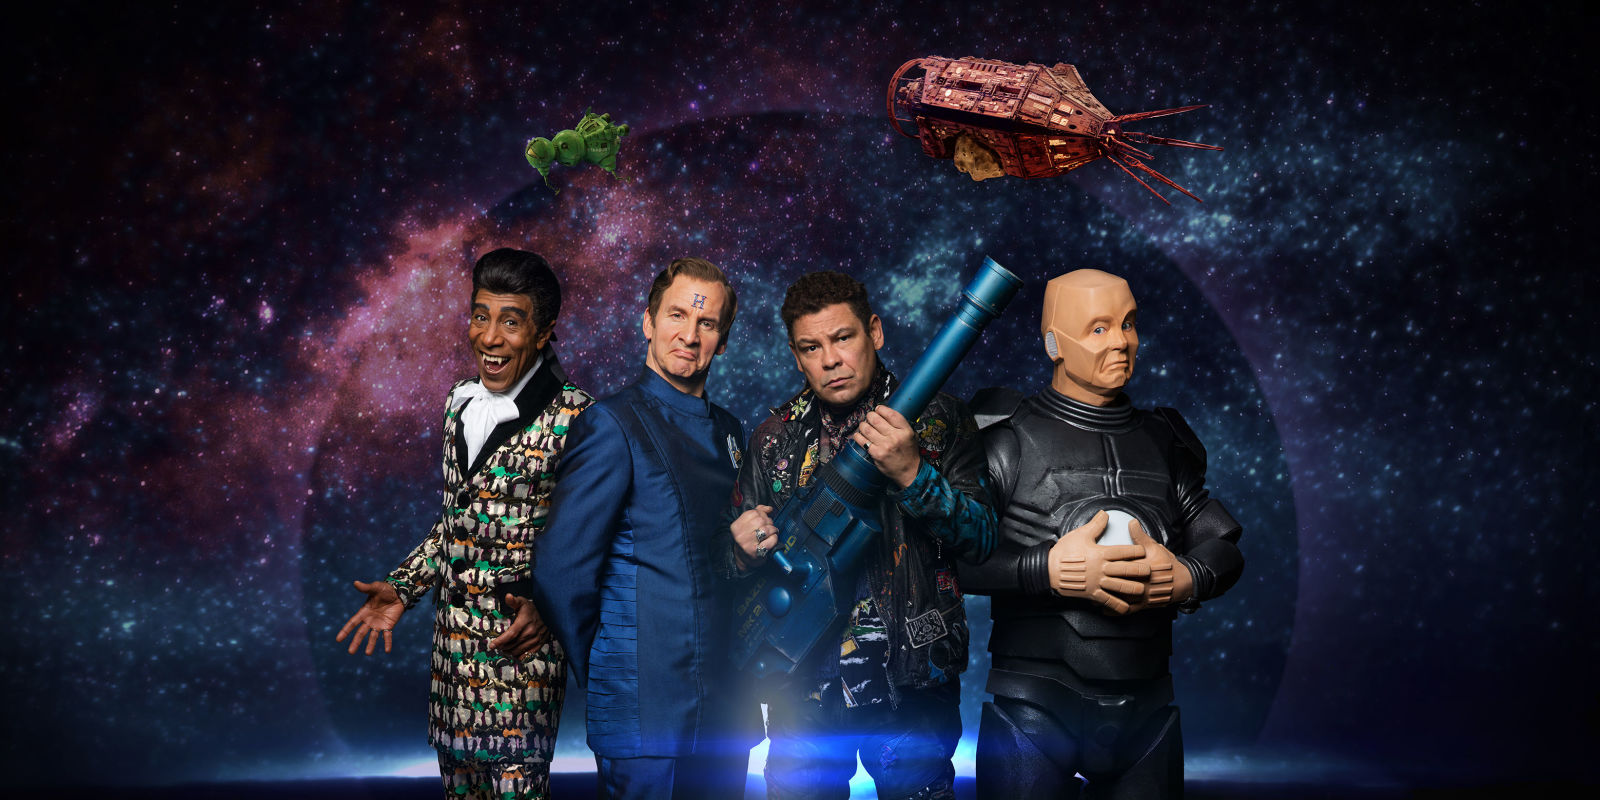 Red Dwarf XI cast, episodes, characters, return date ...